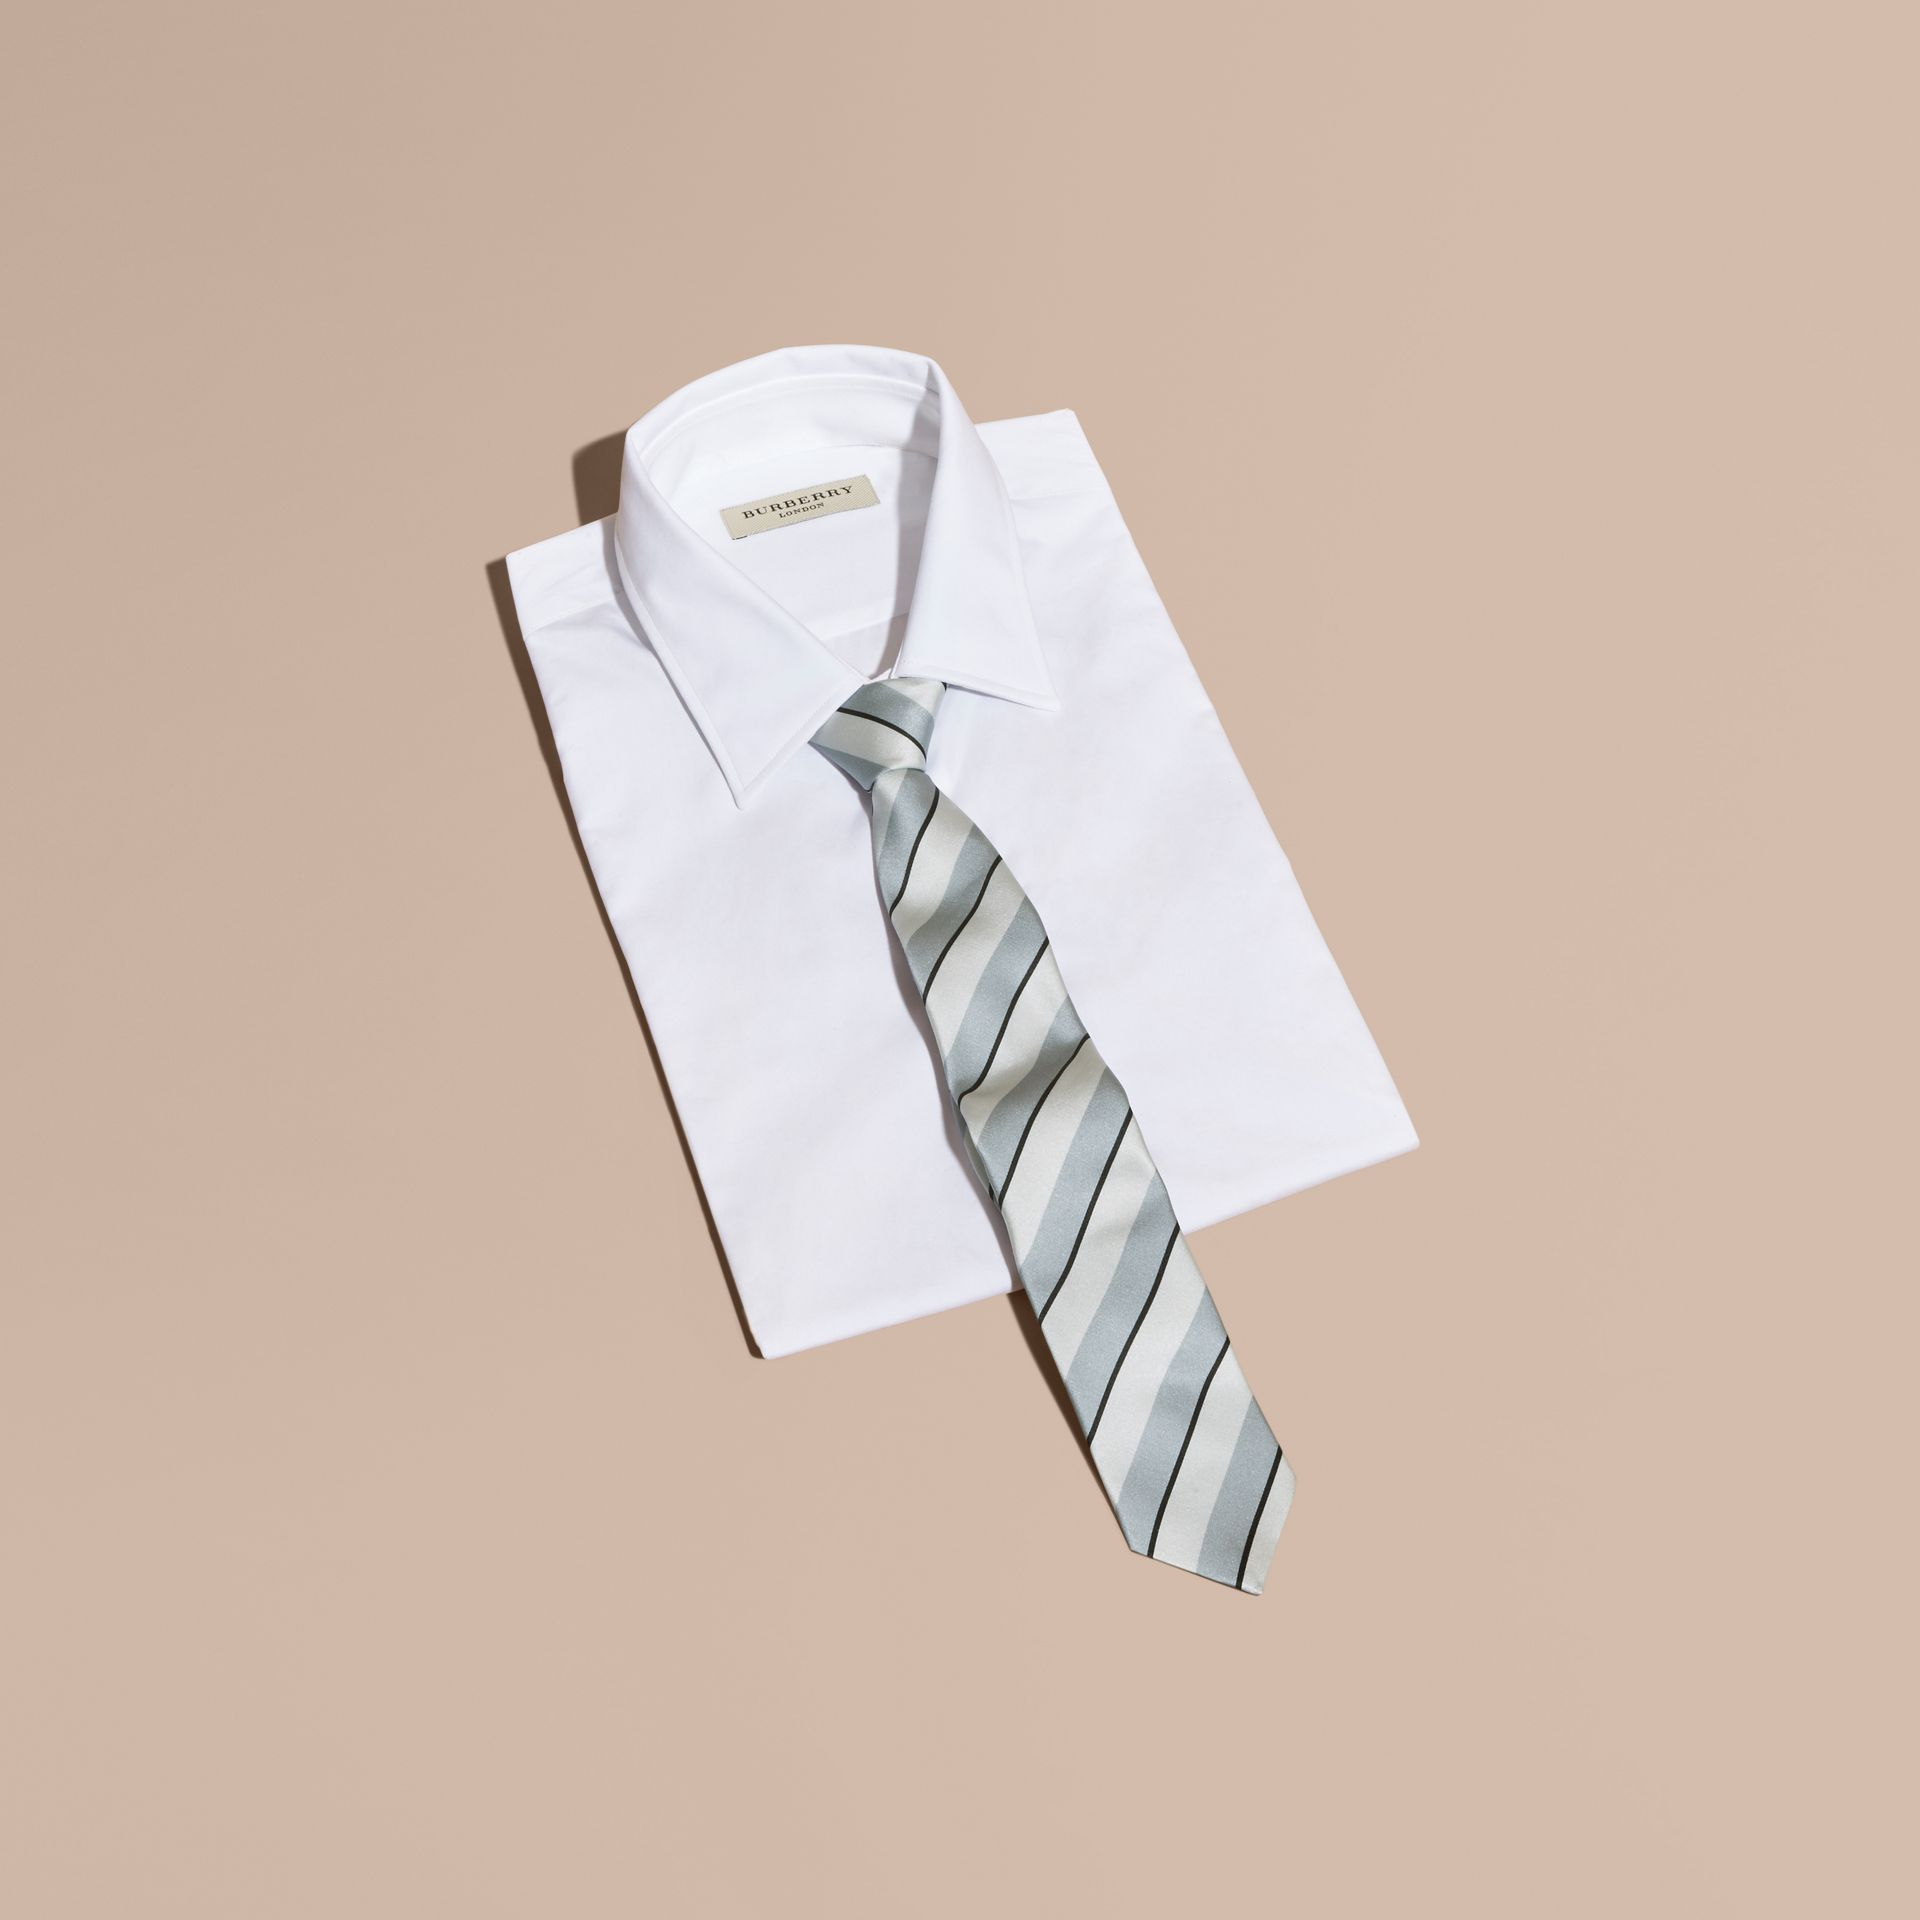 Slim Cut Pyjama Stripe Silk Cotton Tie in Light Blue - Men | Burberry - gallery image 3